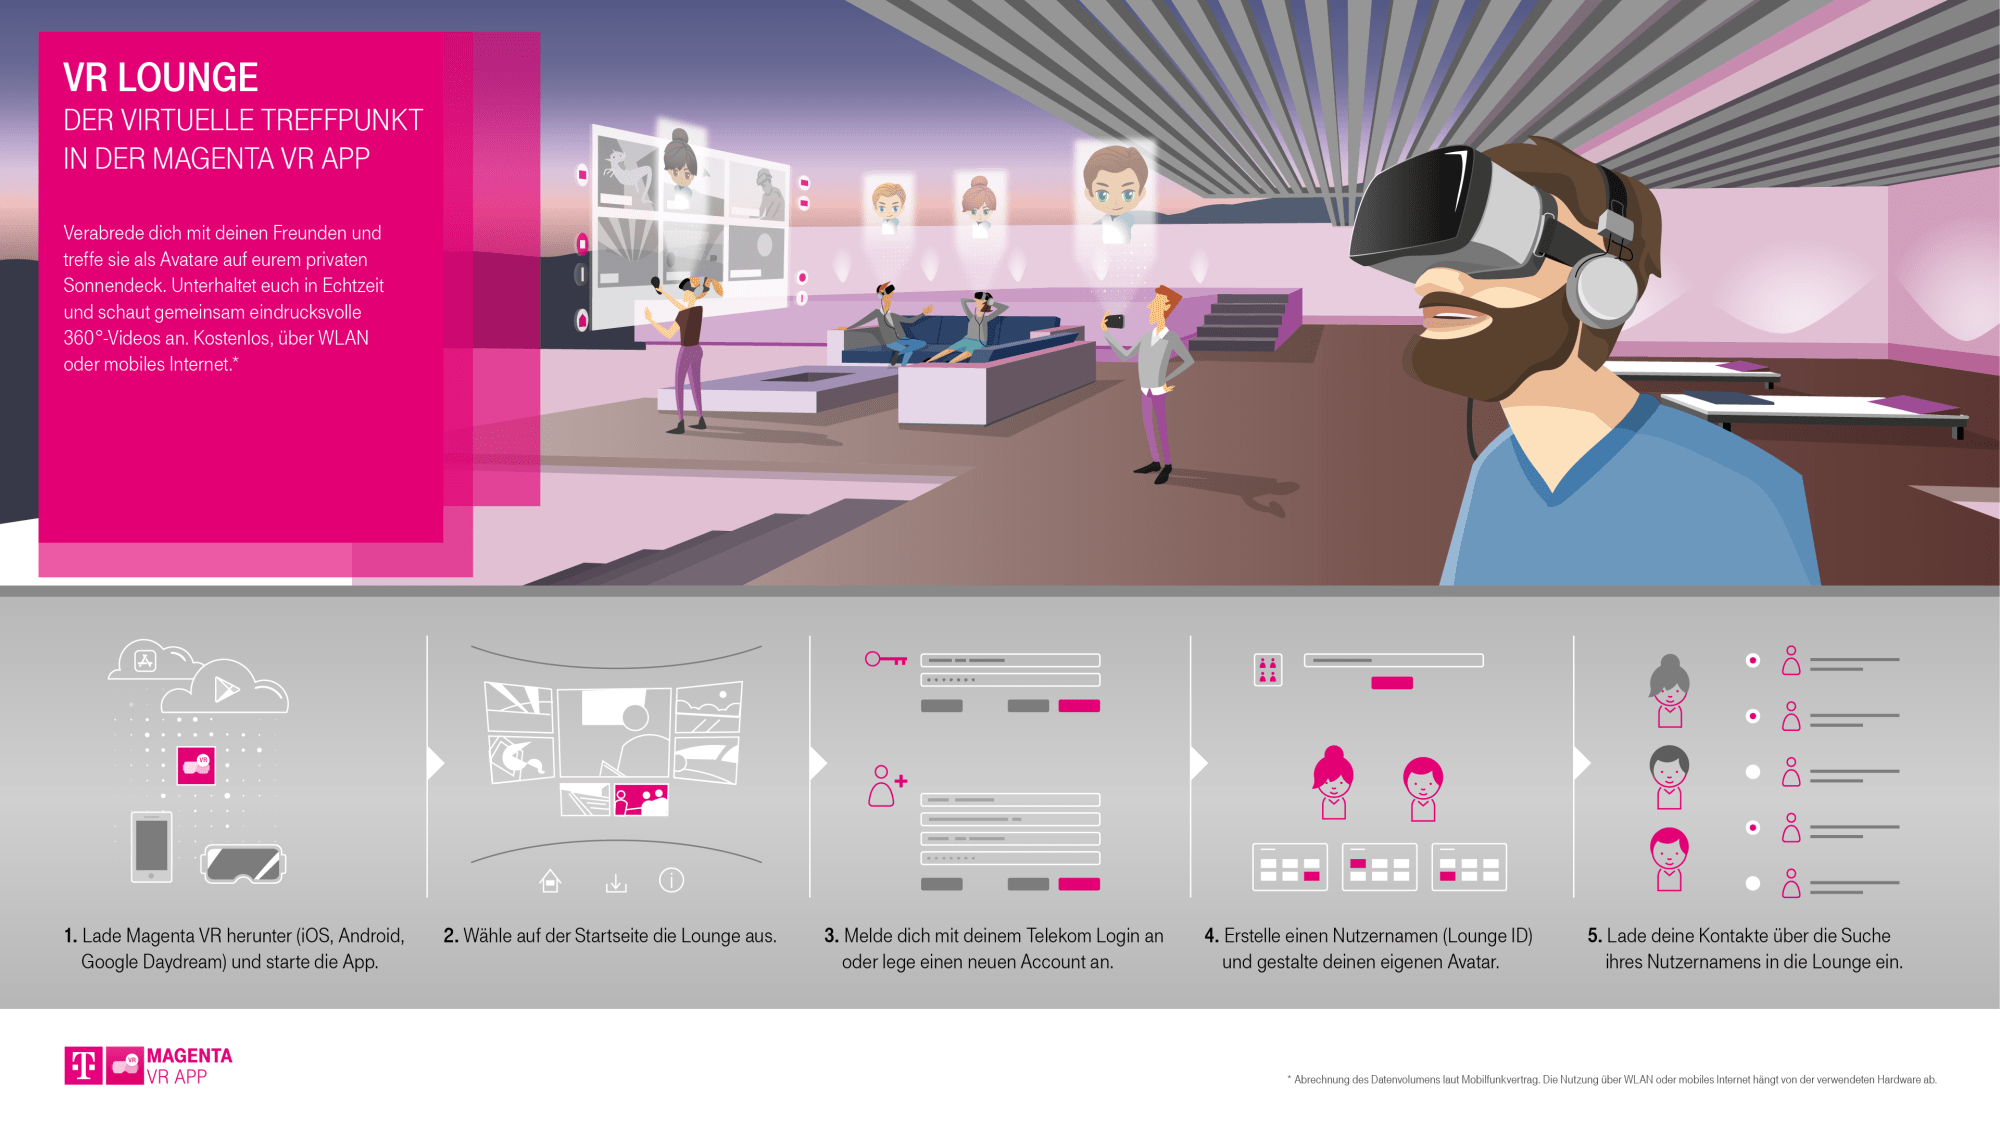 hight resolution of erkl rgrafik telekom magenta vr app lounge